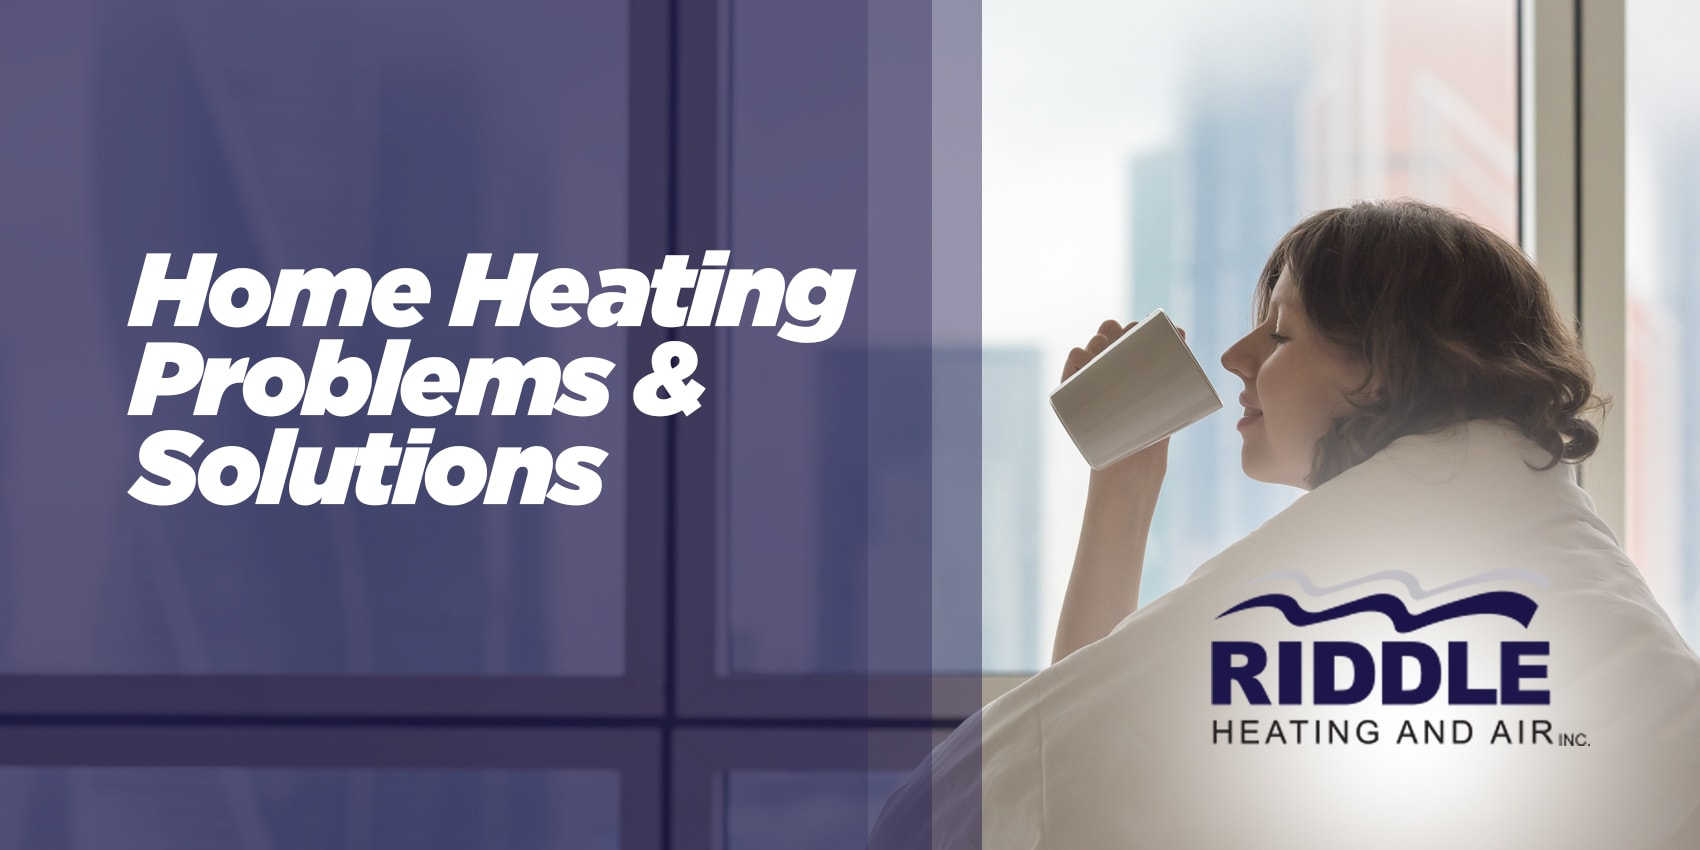 Home Heating Problems & Solutions